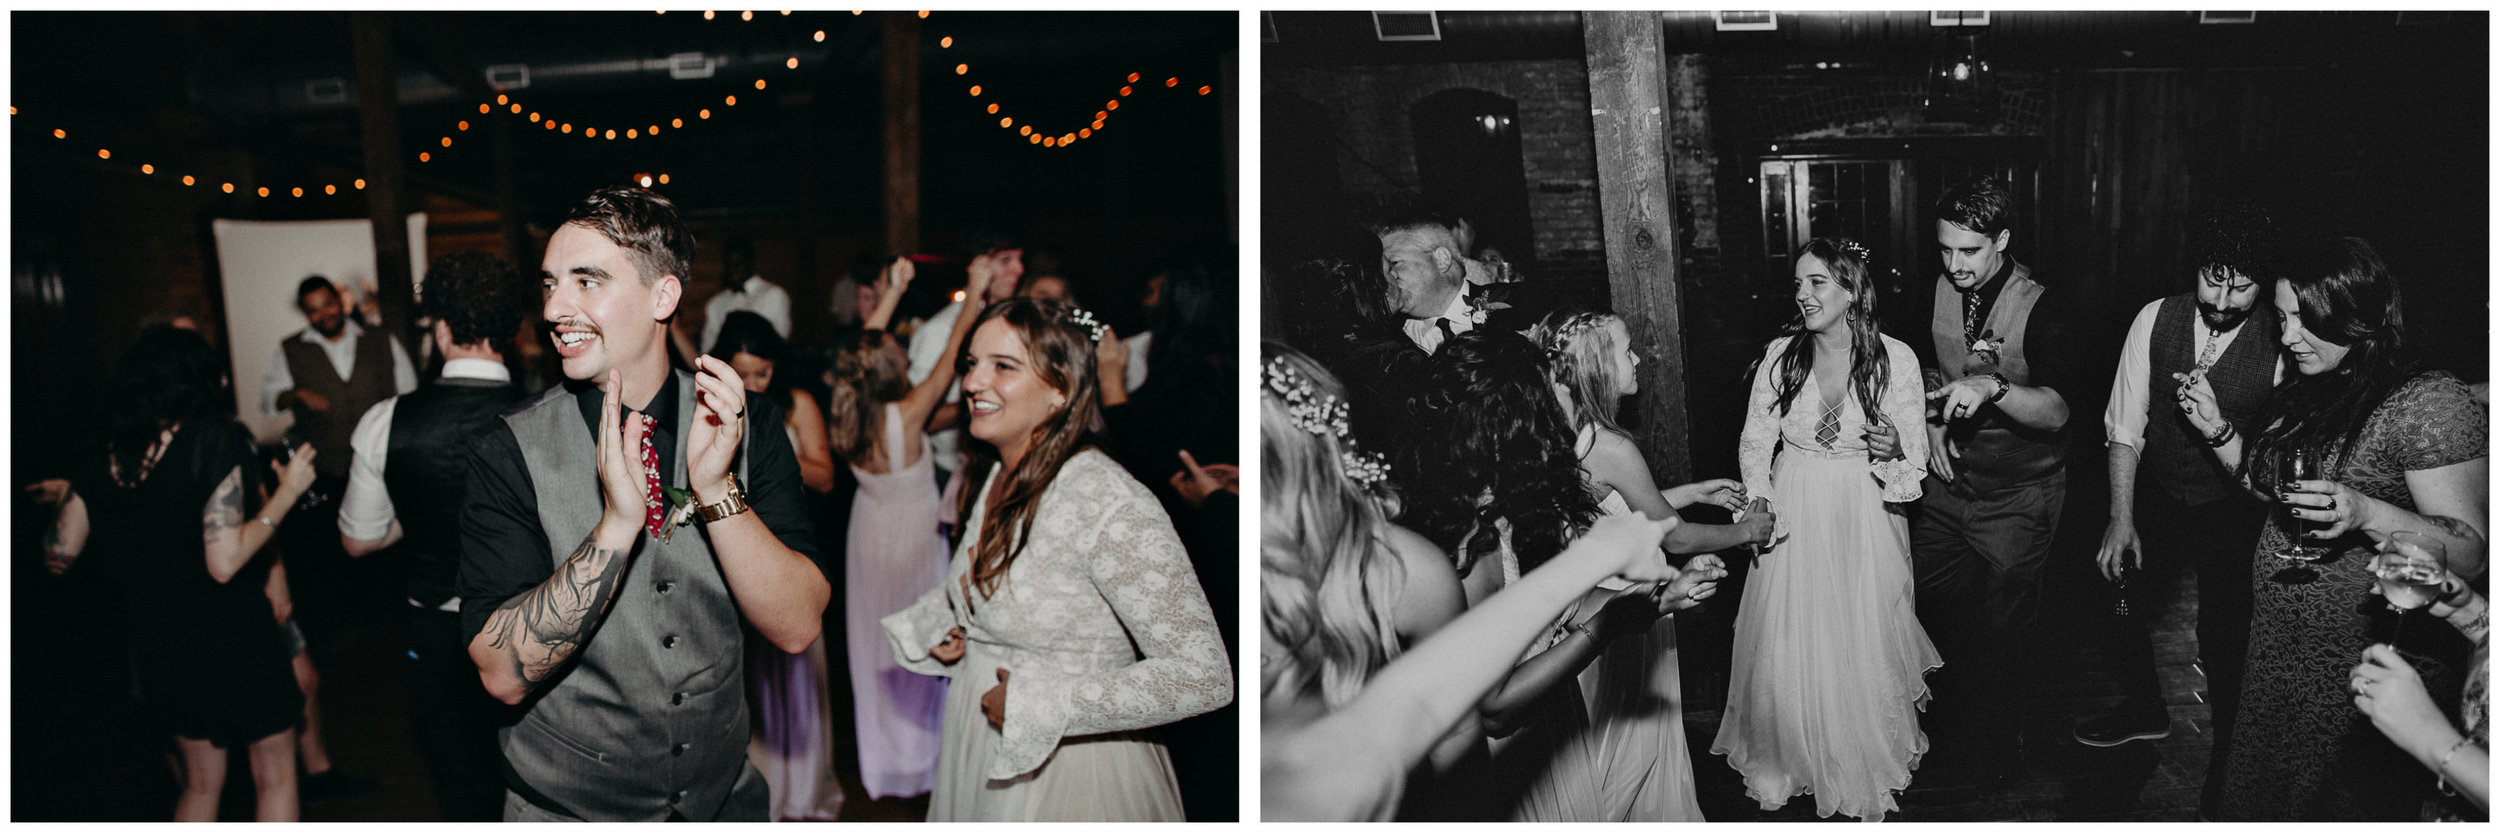 166 - Bride and groom : Dancing: Details : Toasts wedding - Atlanta wedding photographer.JPG